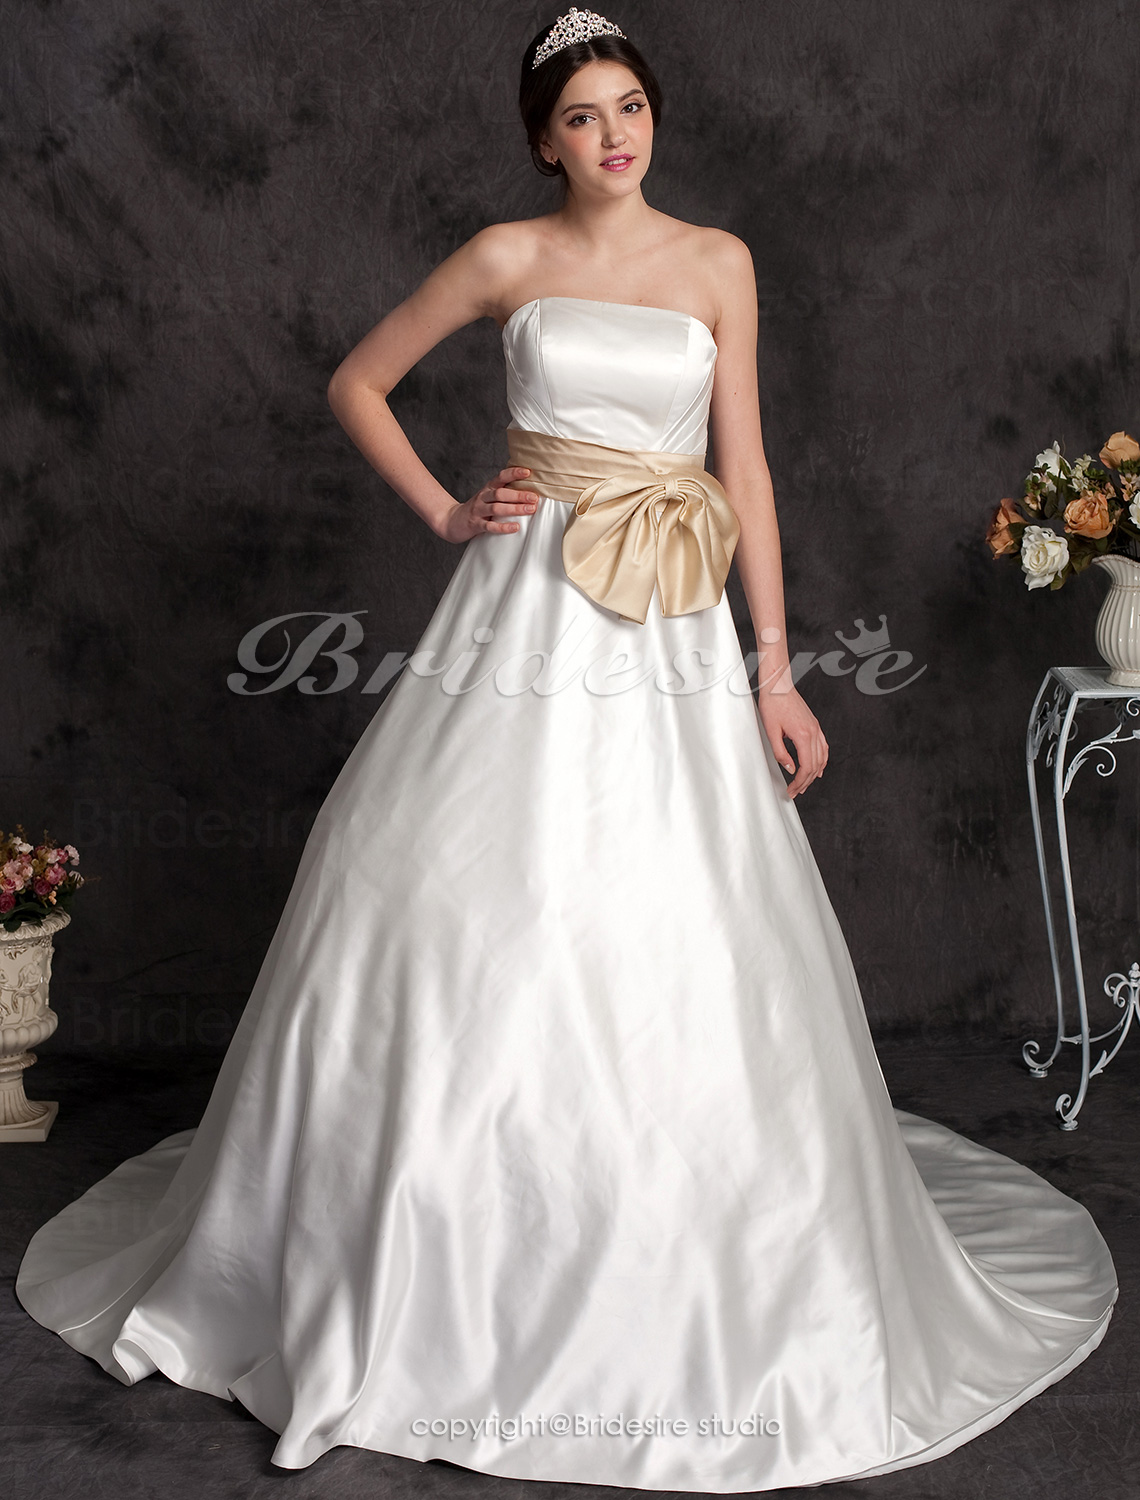 A-line Satin Strapless Chapel Train Wedding Dress with Ribbon